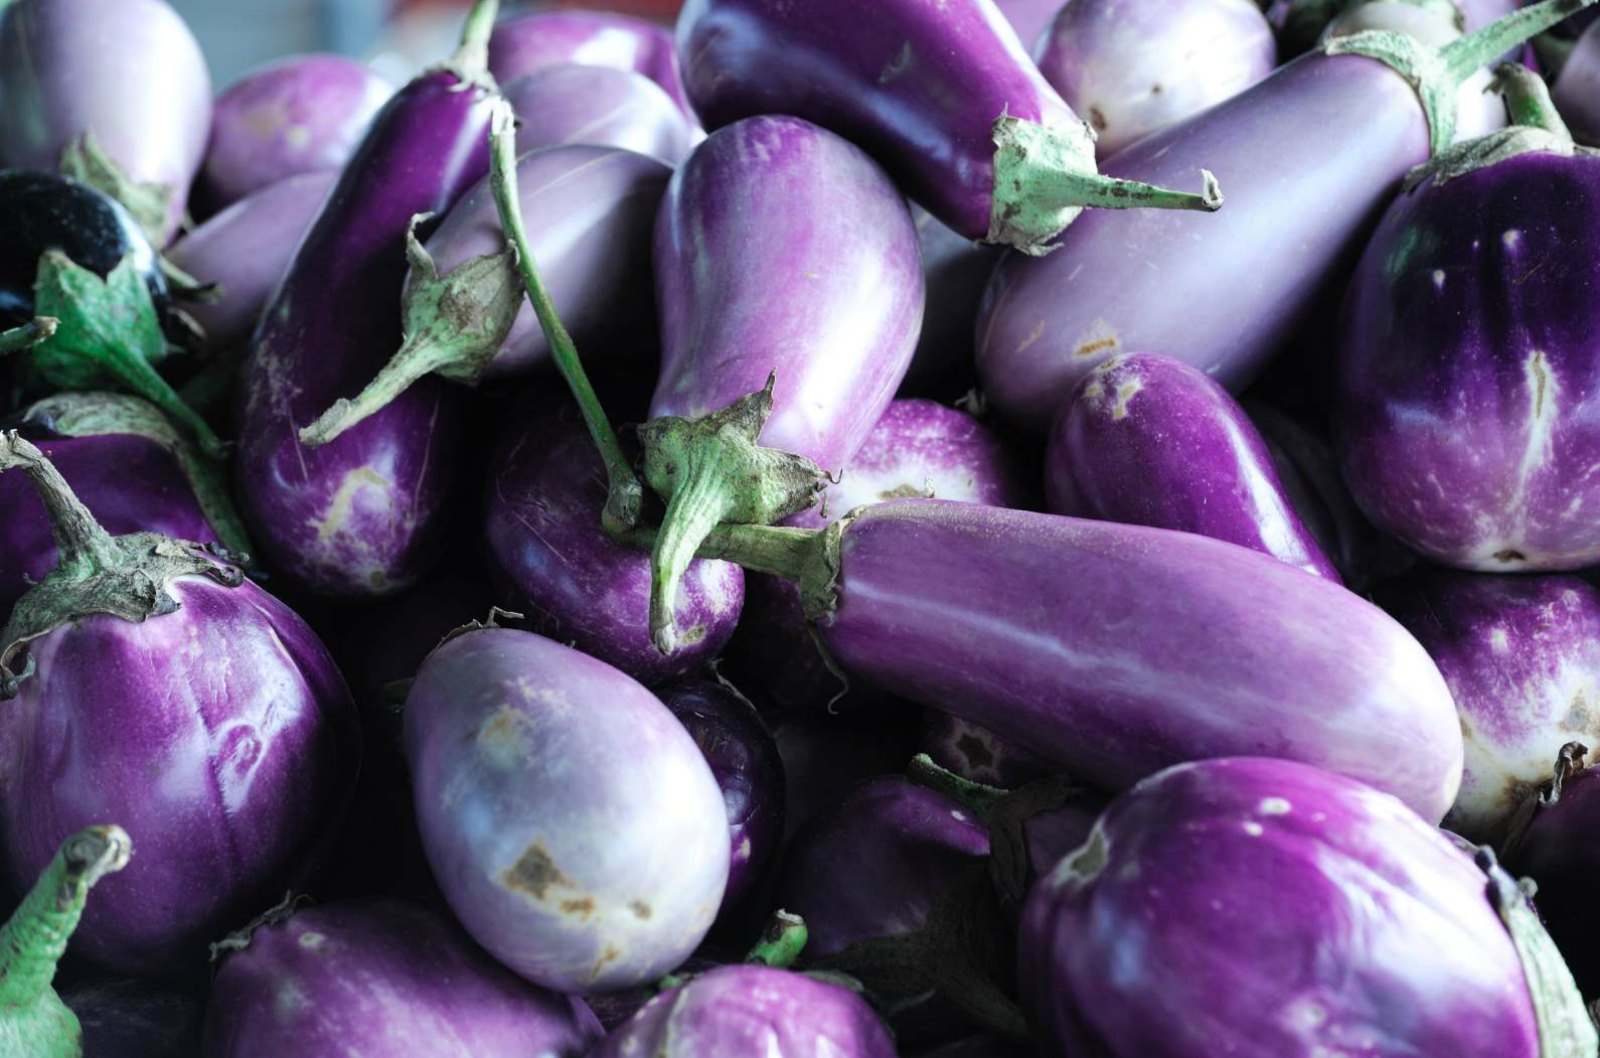 Bioengineered, Insect-Resistant Variety of Eggplant Developed